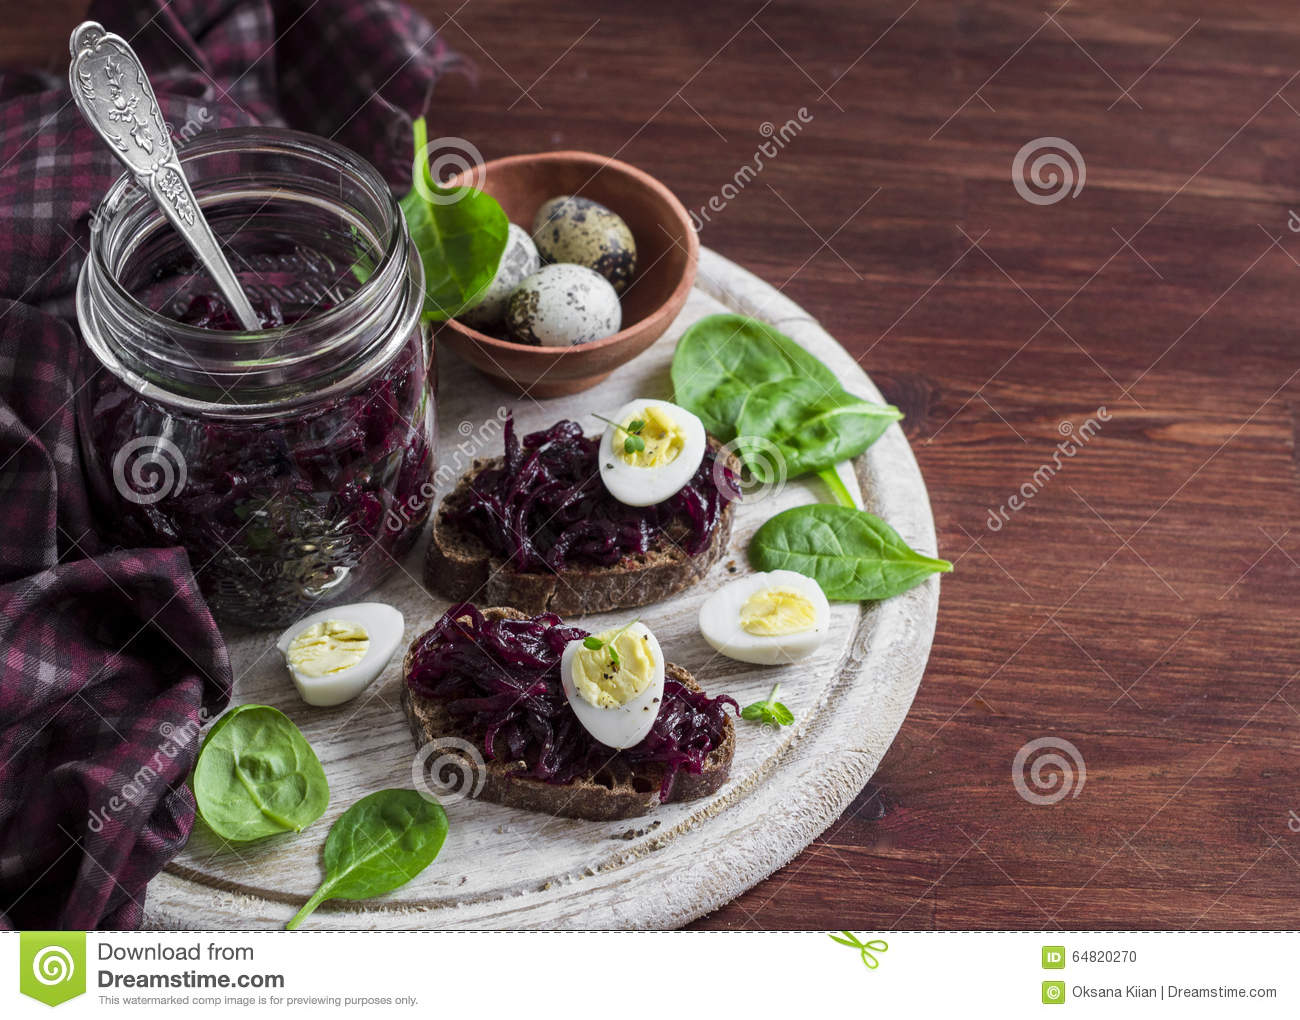 Beetroot relish and a sandwich with beets, quail egg and spinach on rustic light wooden board.